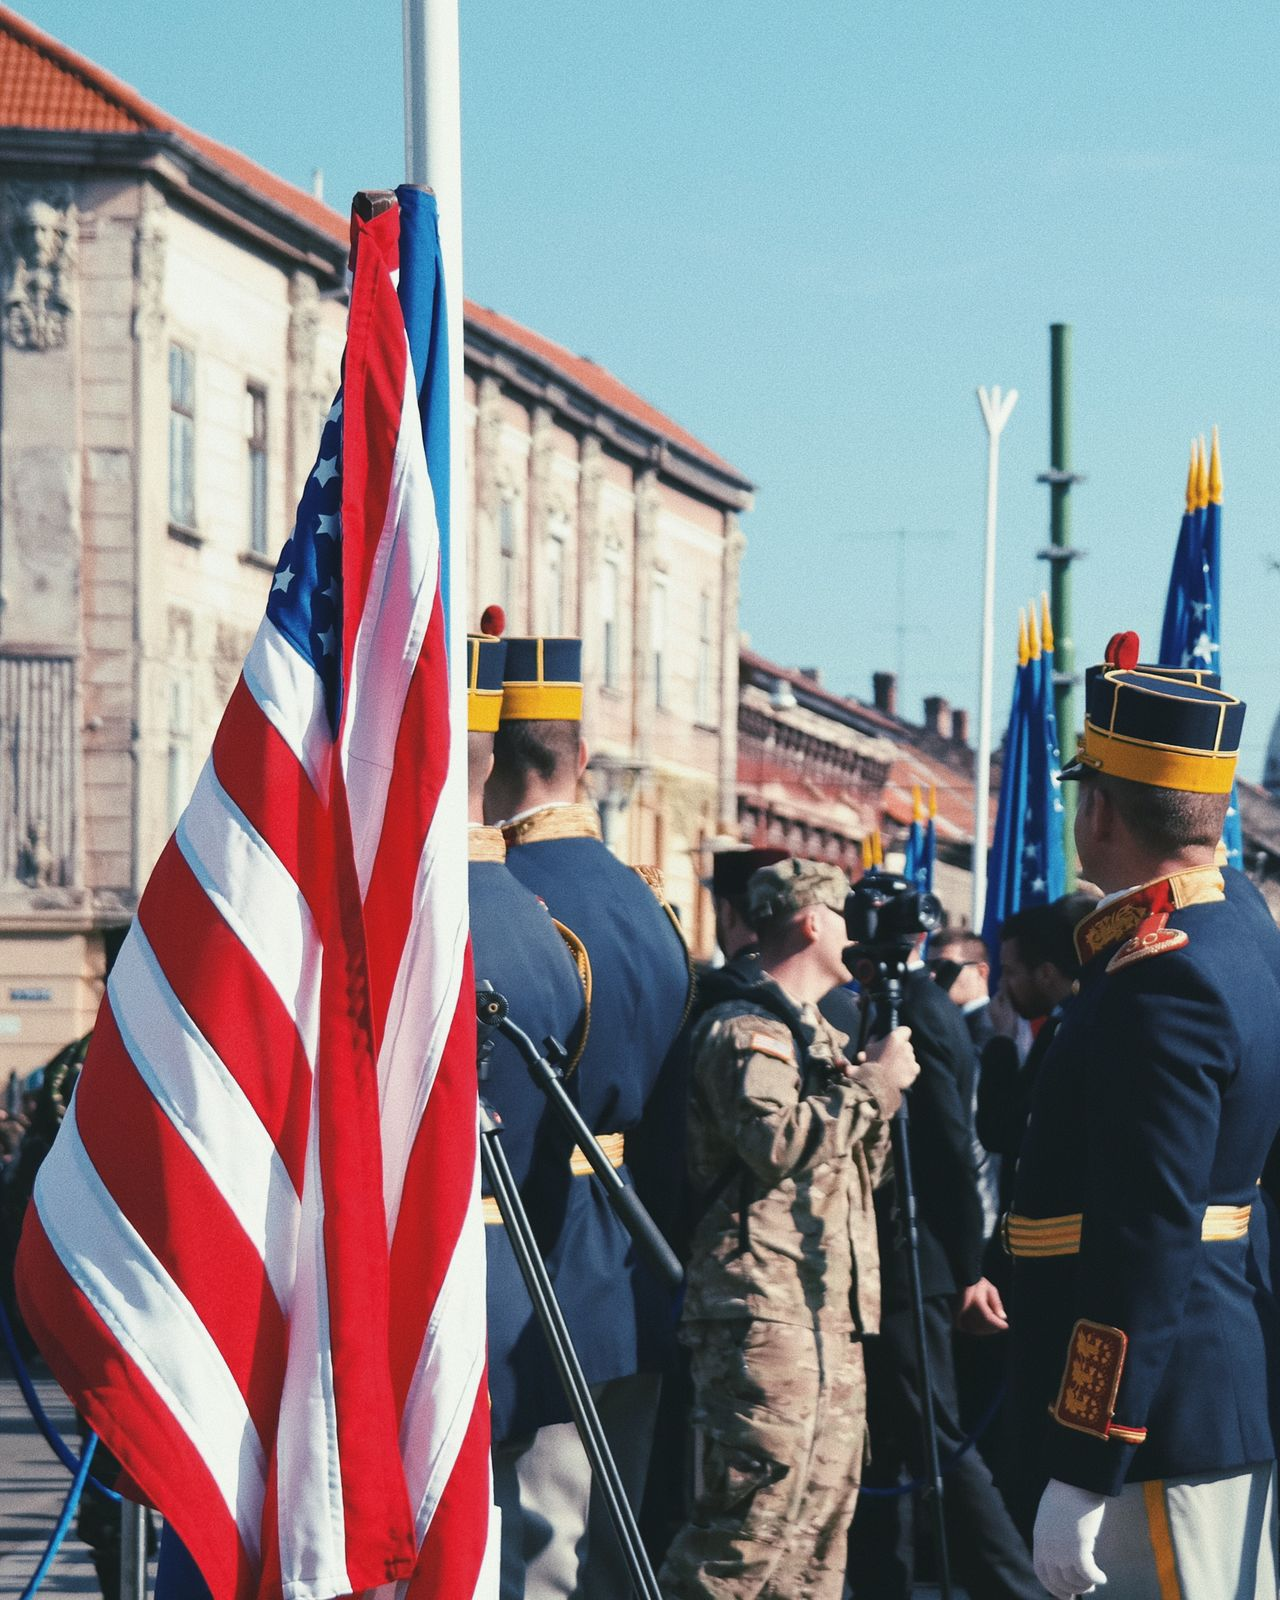 Raise the flag... Flag Patriotism Architecture Military Military Uniform Military Parade Uniform Ceremony Parade Us Military US Flag Flags Outdoors Street Life Urban Made In Romania Europe European Union Cityscape Details Of My Life City Life City People Army Soldier